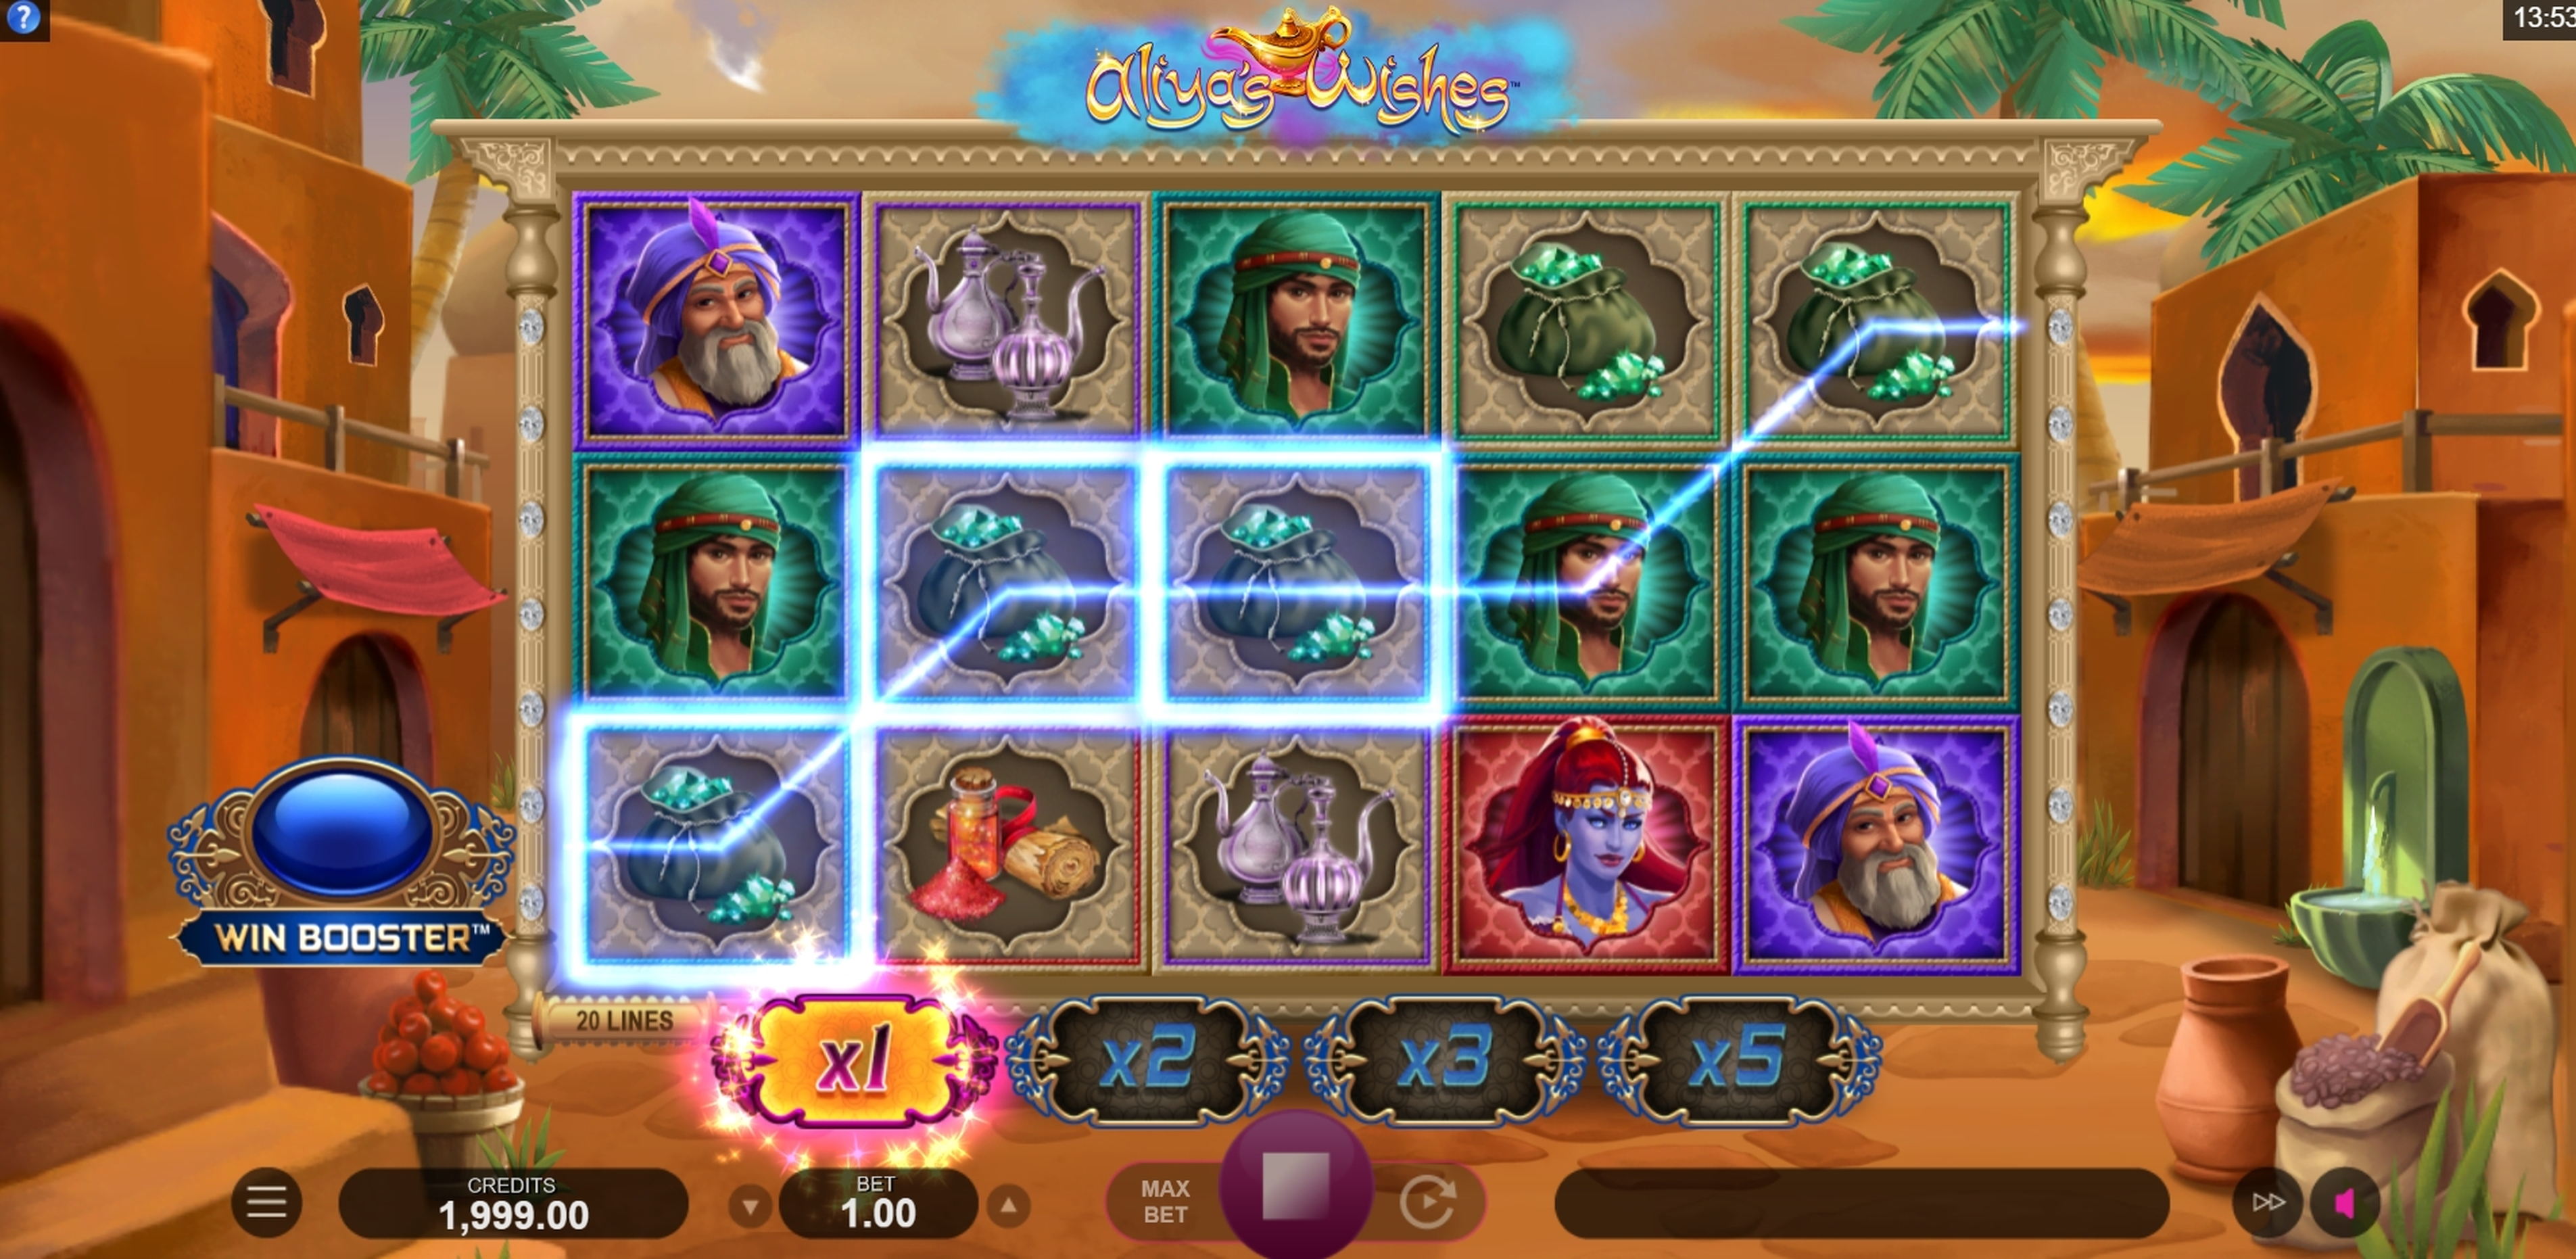 Win Money in Aliyas Wishes Free Slot Game by Fortune Factory Studios